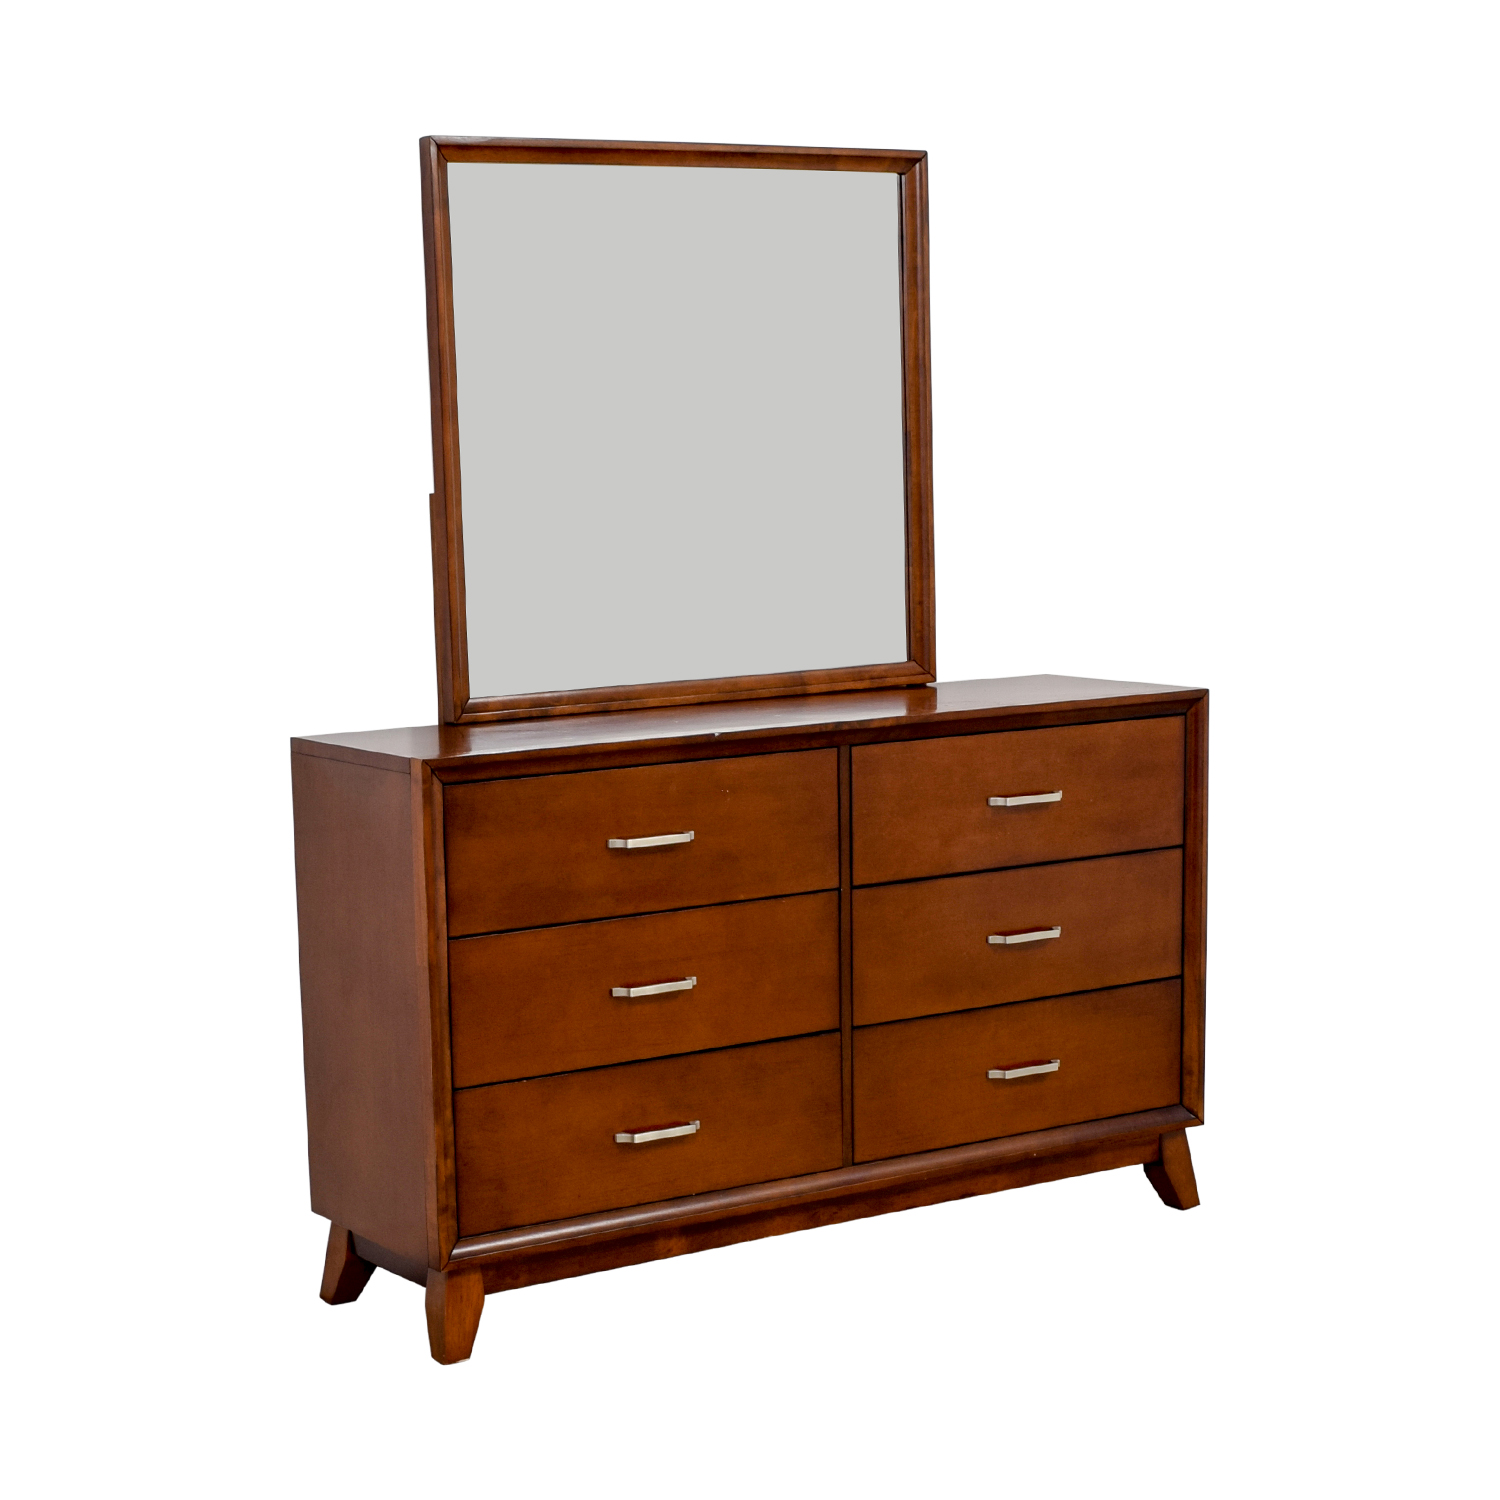 shop Home Elegance Soren Six-Drawer Dresser with Mirror Home Elegance